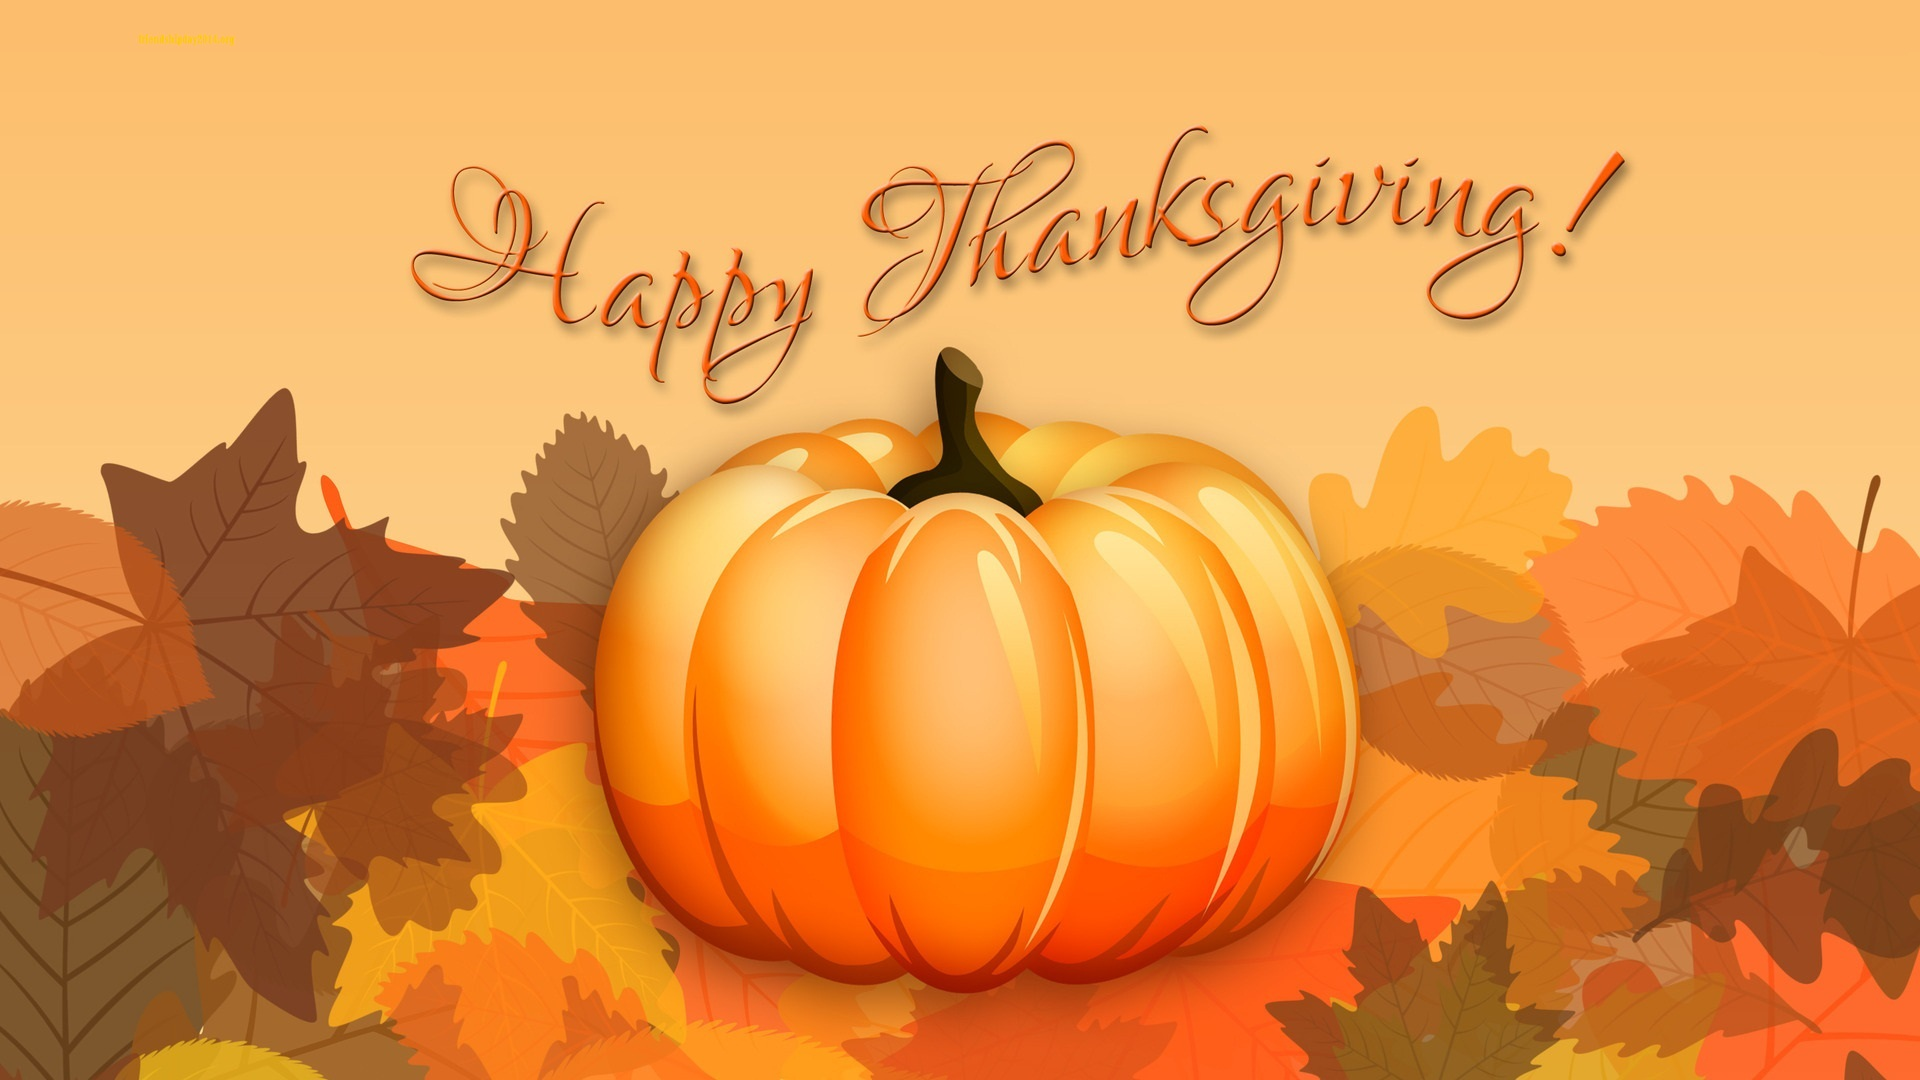 Funny Wallpapers For Desktop Hd Funny Wallpapers Free For Desktop Thanksgiving Hd Wallpaper